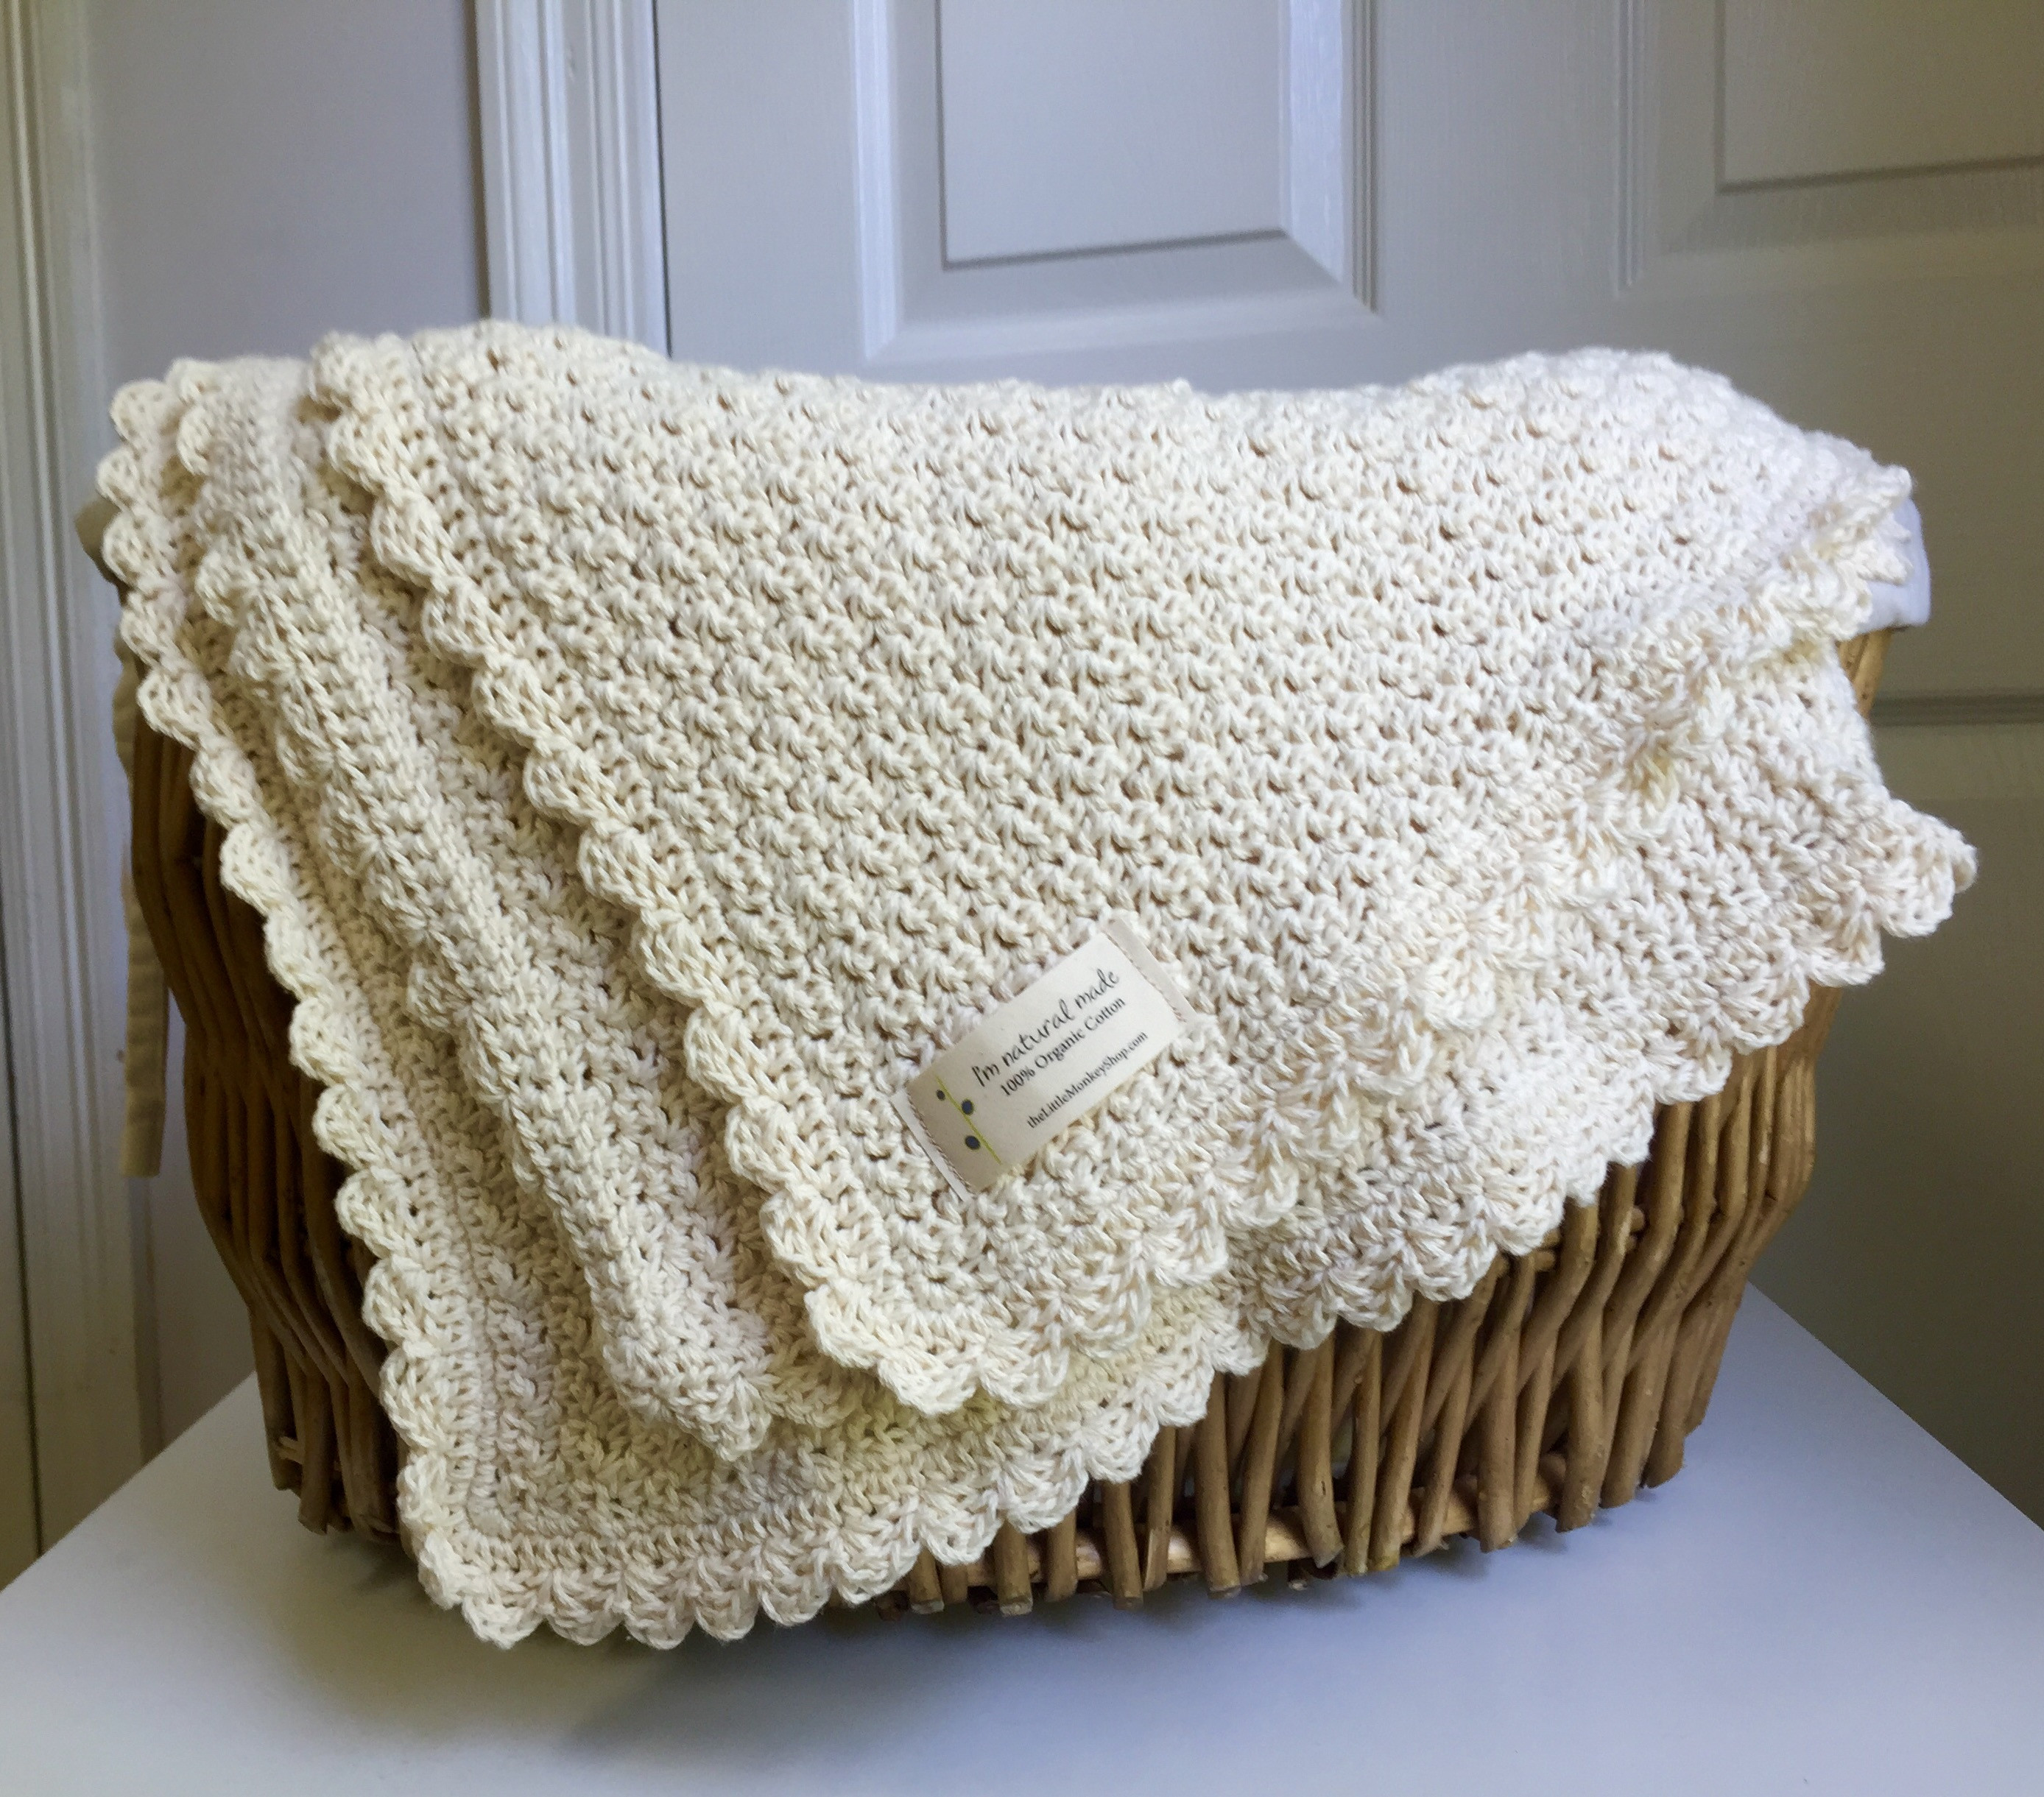 Baby Afghan Crochet Patterns New organic Cotton Baby Blanket Pure and Simple by Little Of Beautiful 49 Photos Baby Afghan Crochet Patterns